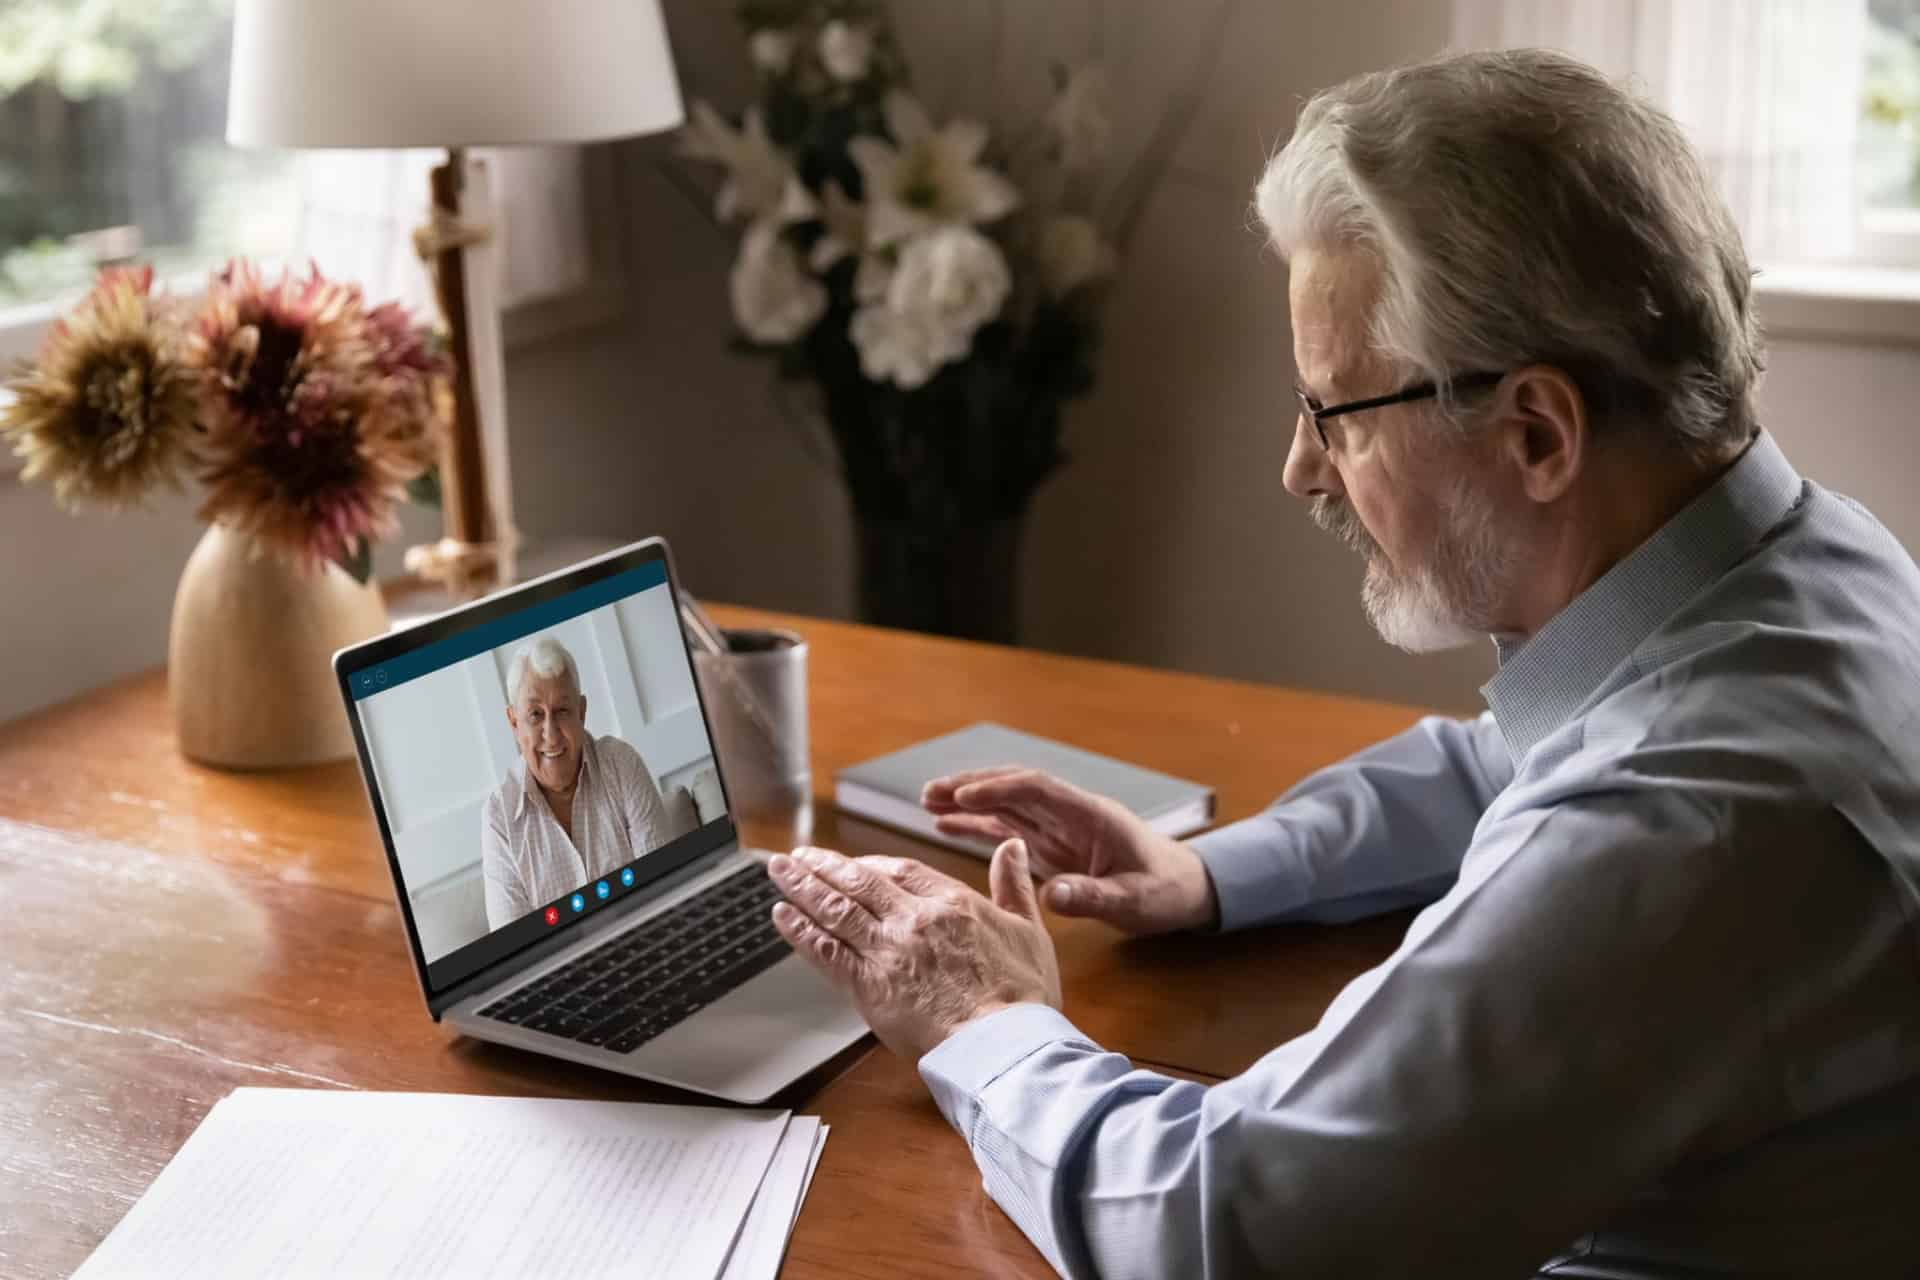 A clinical sleep specialist conducts a telehealth video call with someone who suffers from insomnia.